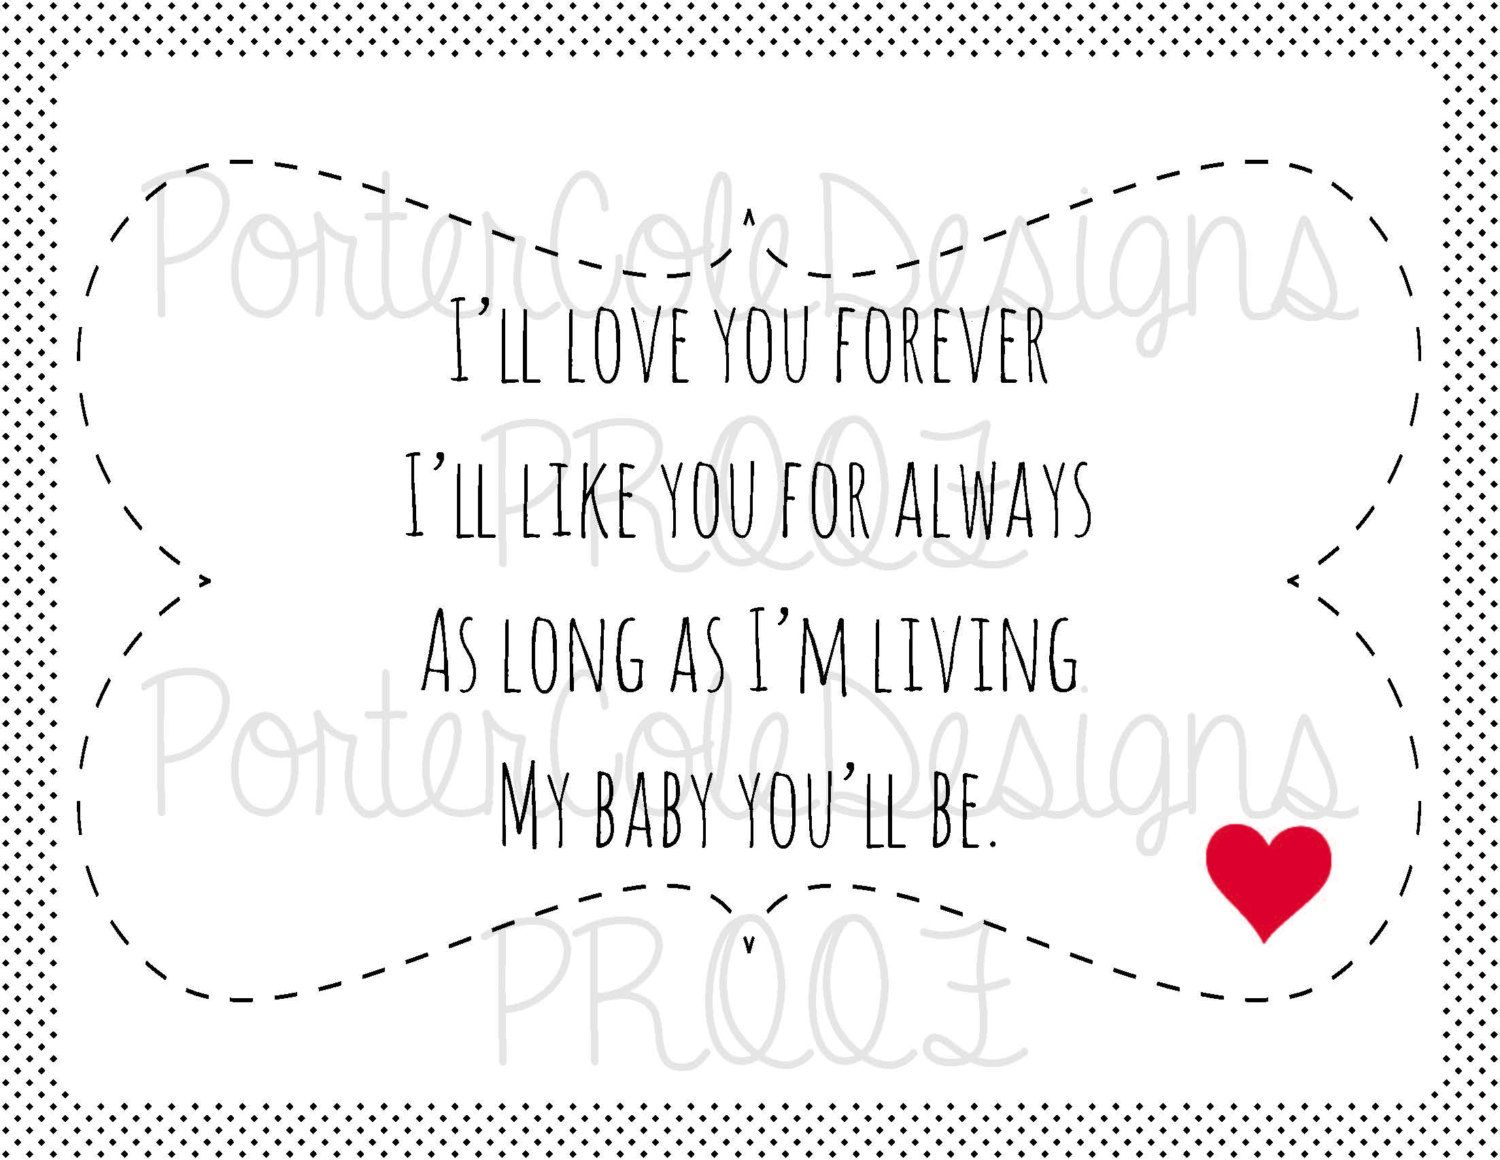 I Love You Forever I Like You For Always Quote 8.5X11 I'll Love You Forever Children's Bookportercoledesigns